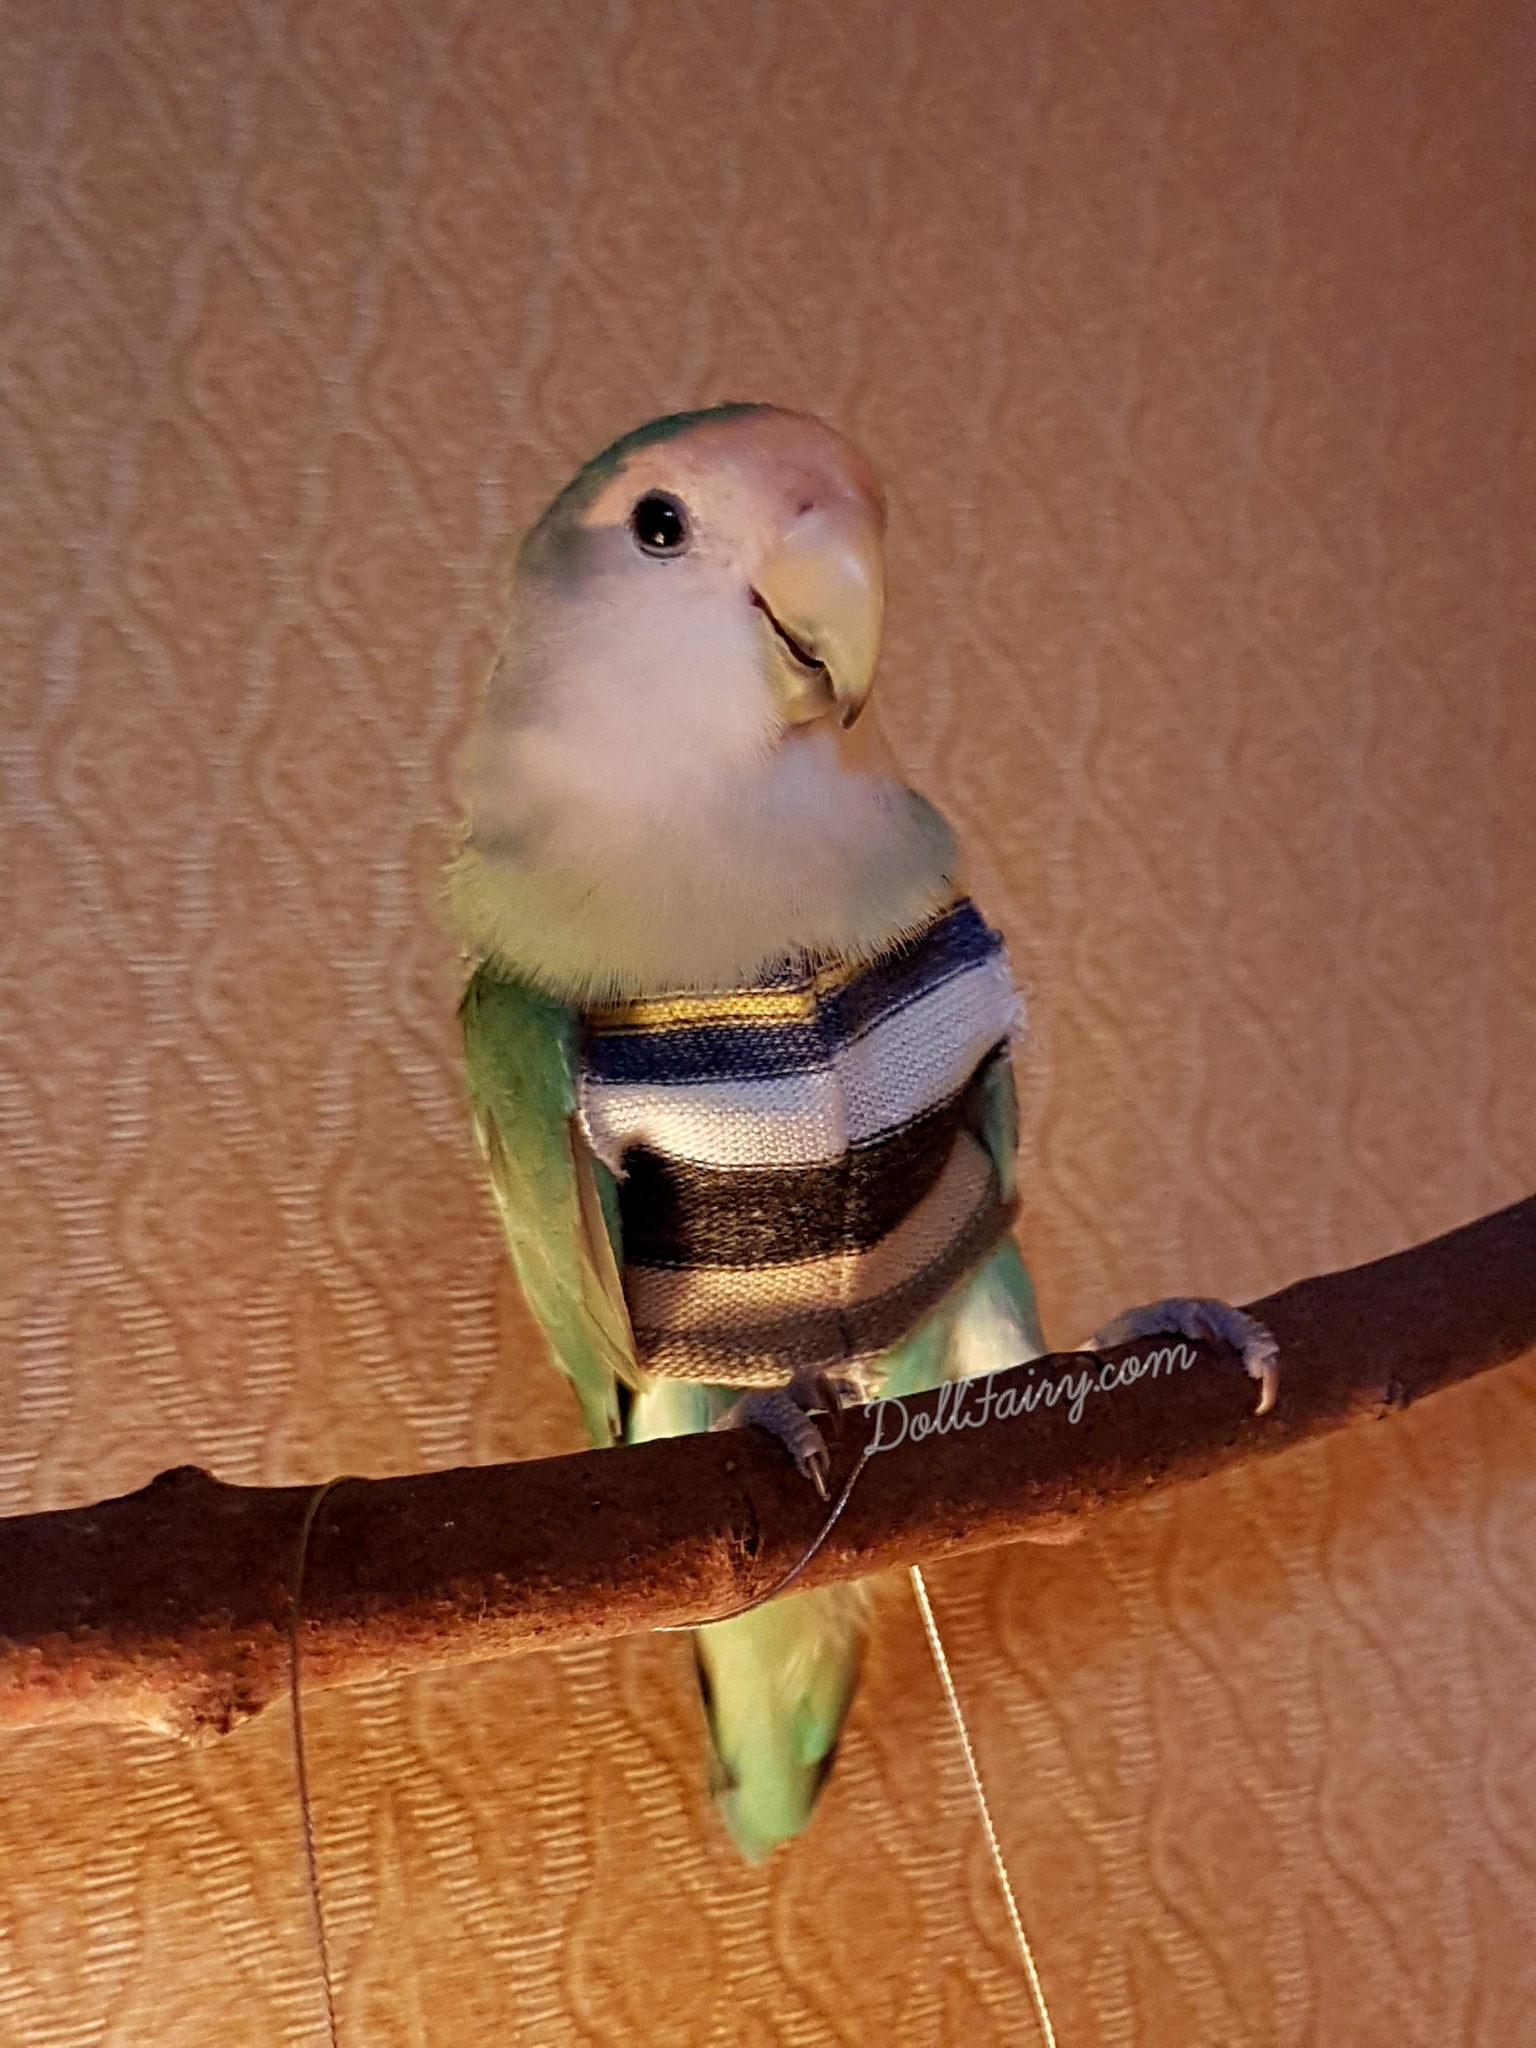 Jersey knit sweater for a lovebird.